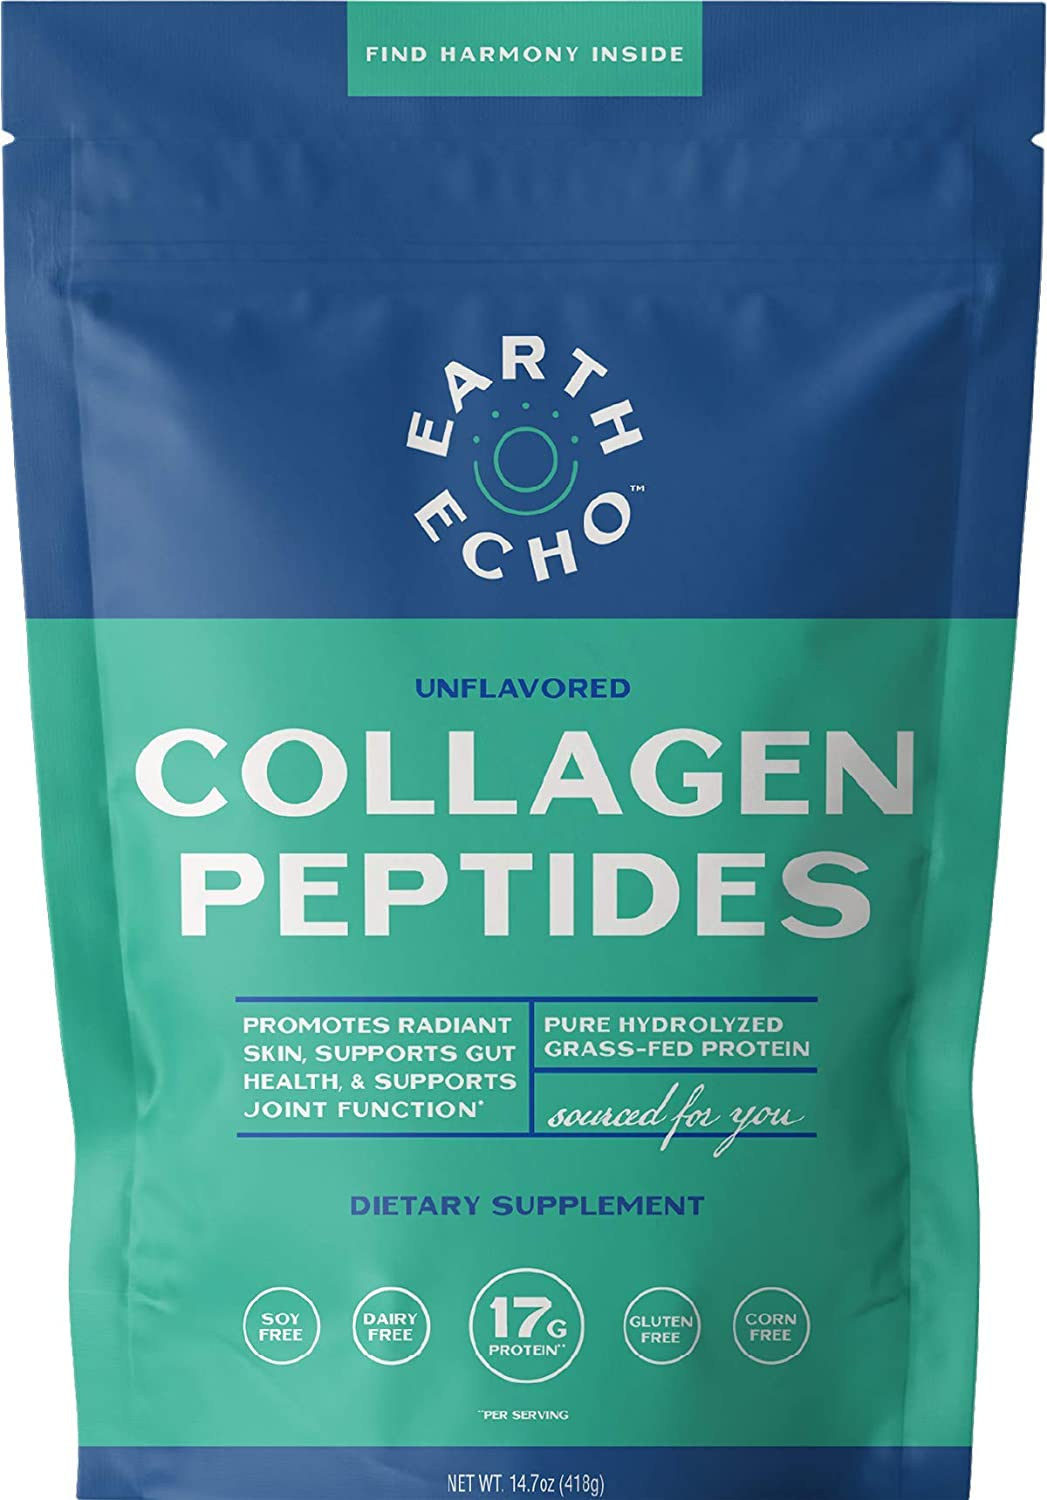 Earth Echo: Collagen Peptides - Unflavored Collagen Powder for Healthy Skin, Nails & Joints - Pure Bovine Collagen Peptide Powder with 17g Protein - Non-GMO, No Gluten, Grass-Fed - 14.7oz, 22 Servings